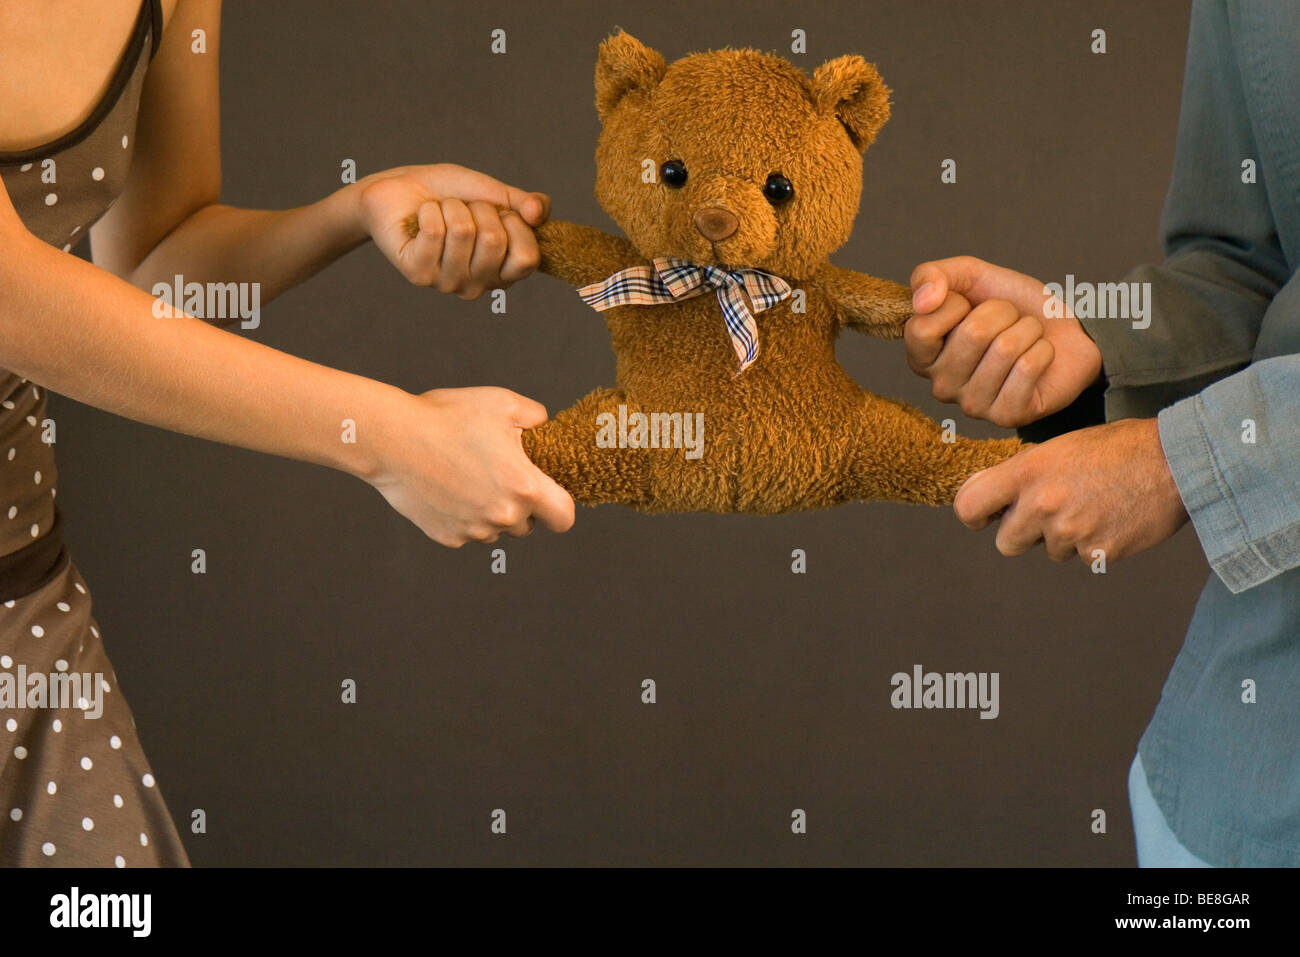 Teddy bear being pulled apart by two people each struggling for possession - Stock Image